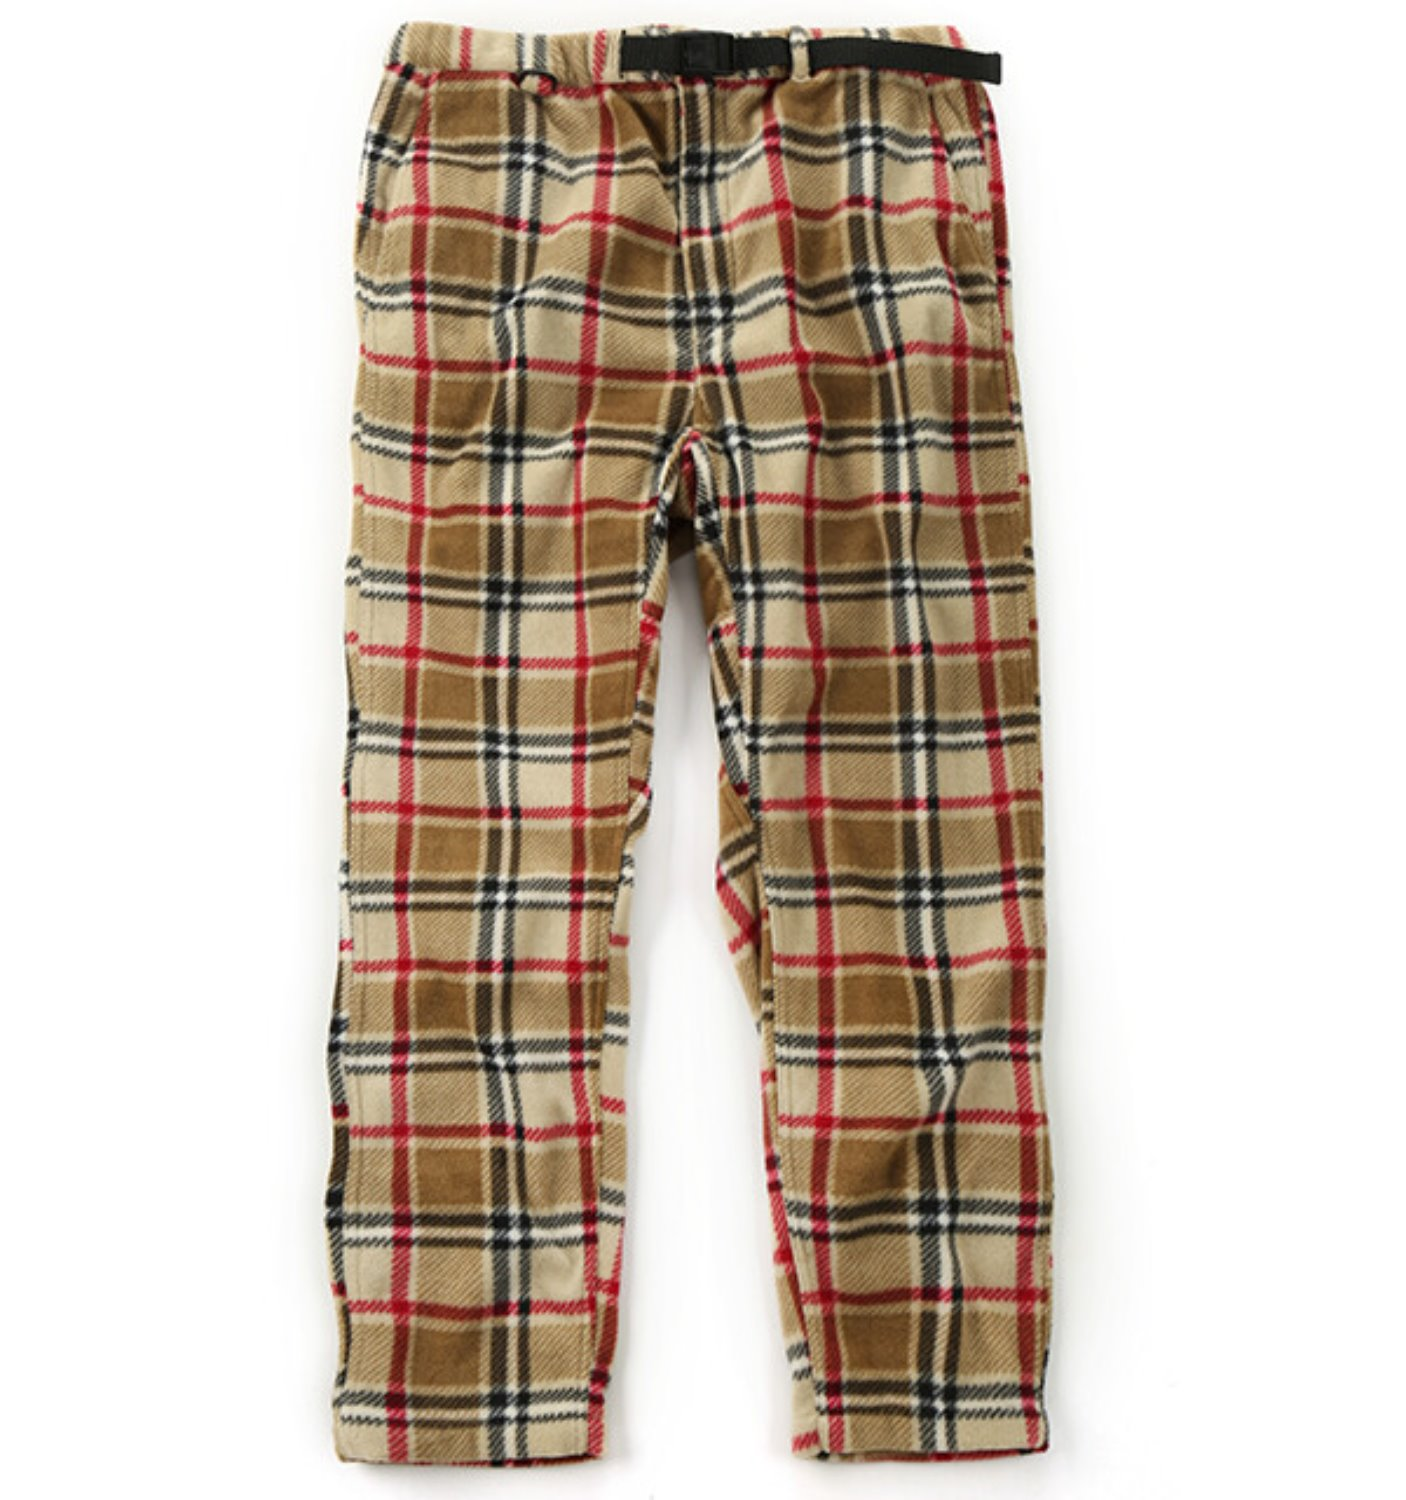 EZ PANT CAMEL POLYESTER PLAID FLEECE